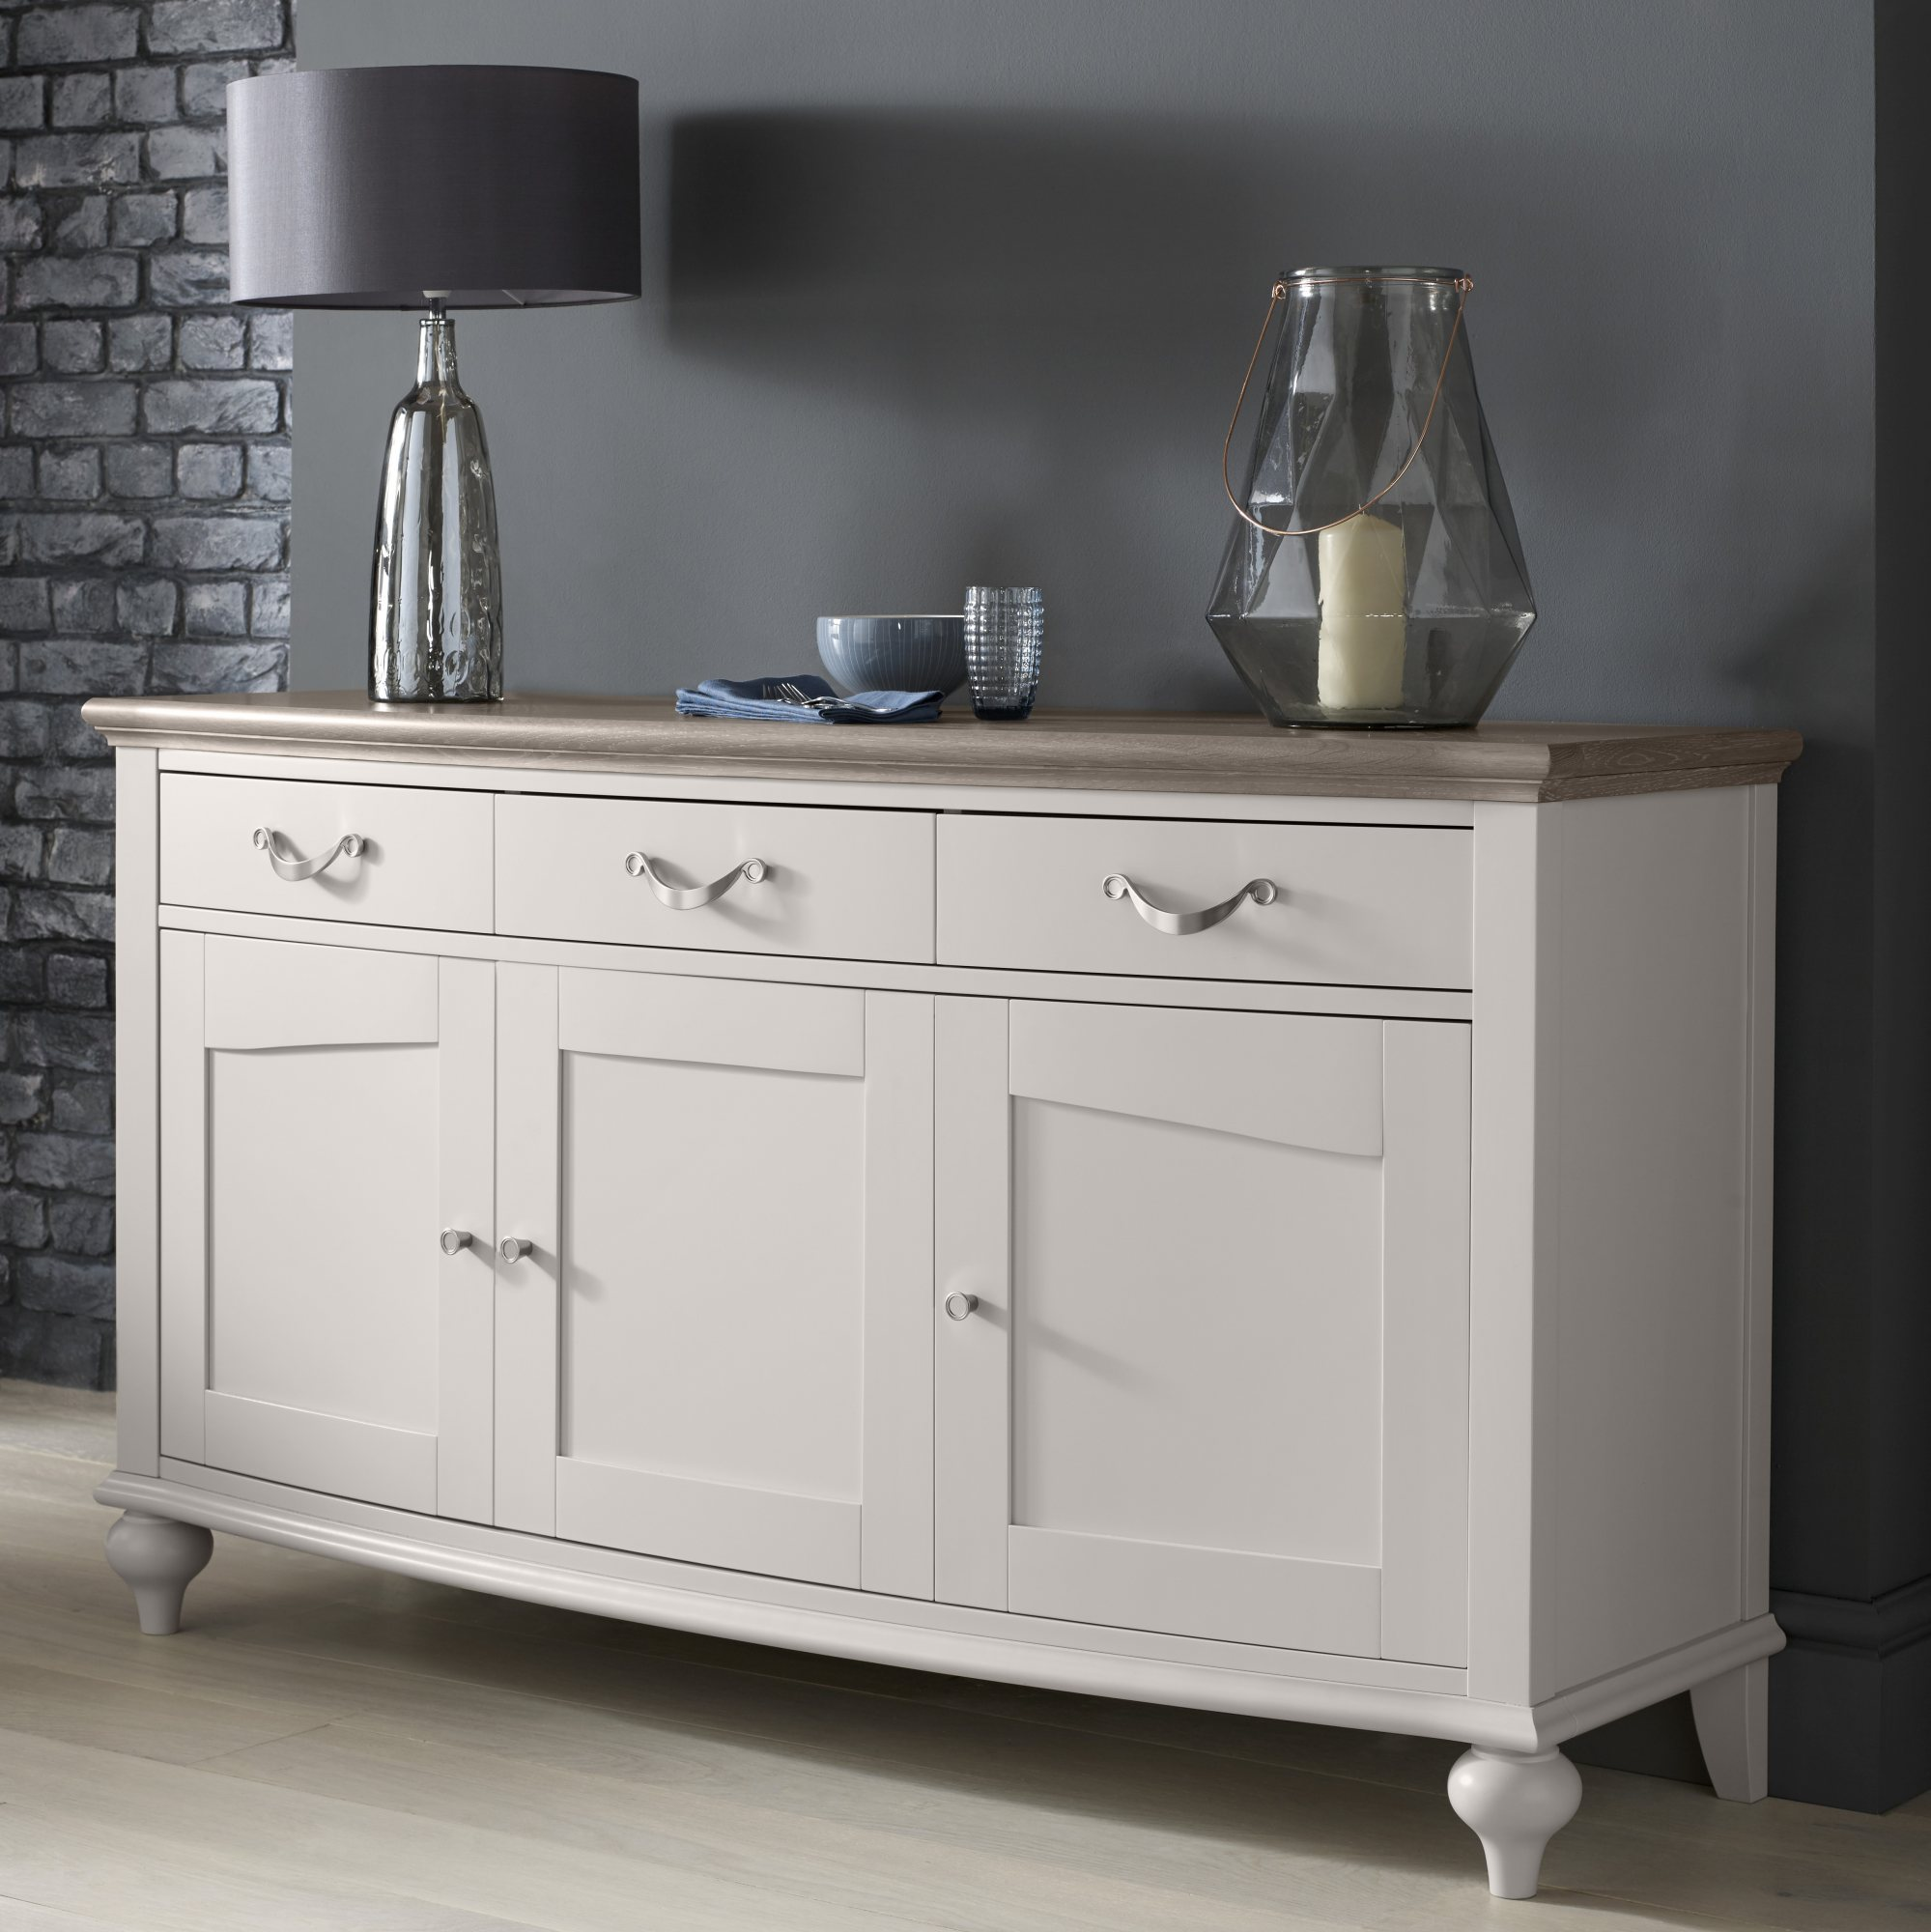 MONICA GREY WIDE SIDEBOARD - L155cm x D48cm x H86cm